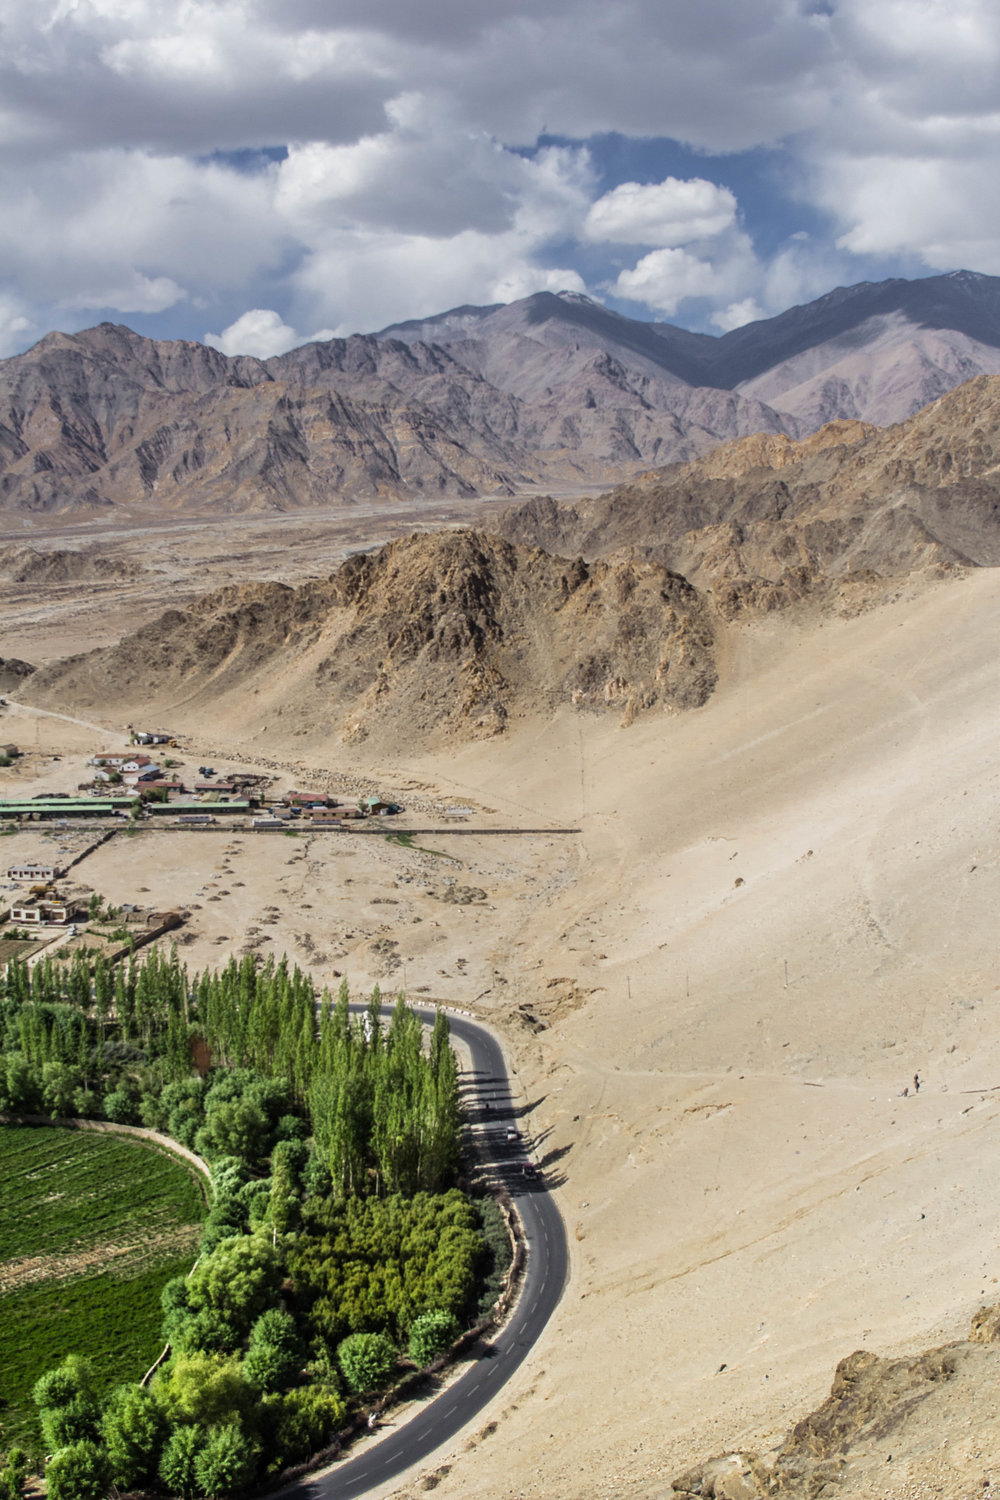 Leh - the once known capital of Ladakh, is a military base that shares its airstrip for public use. In 1998, the Indian Army started a program called Op Sadhbhavana (goodwill) to return some peace to the community. Despite that, military areas occupy a majority of the inhabited land.